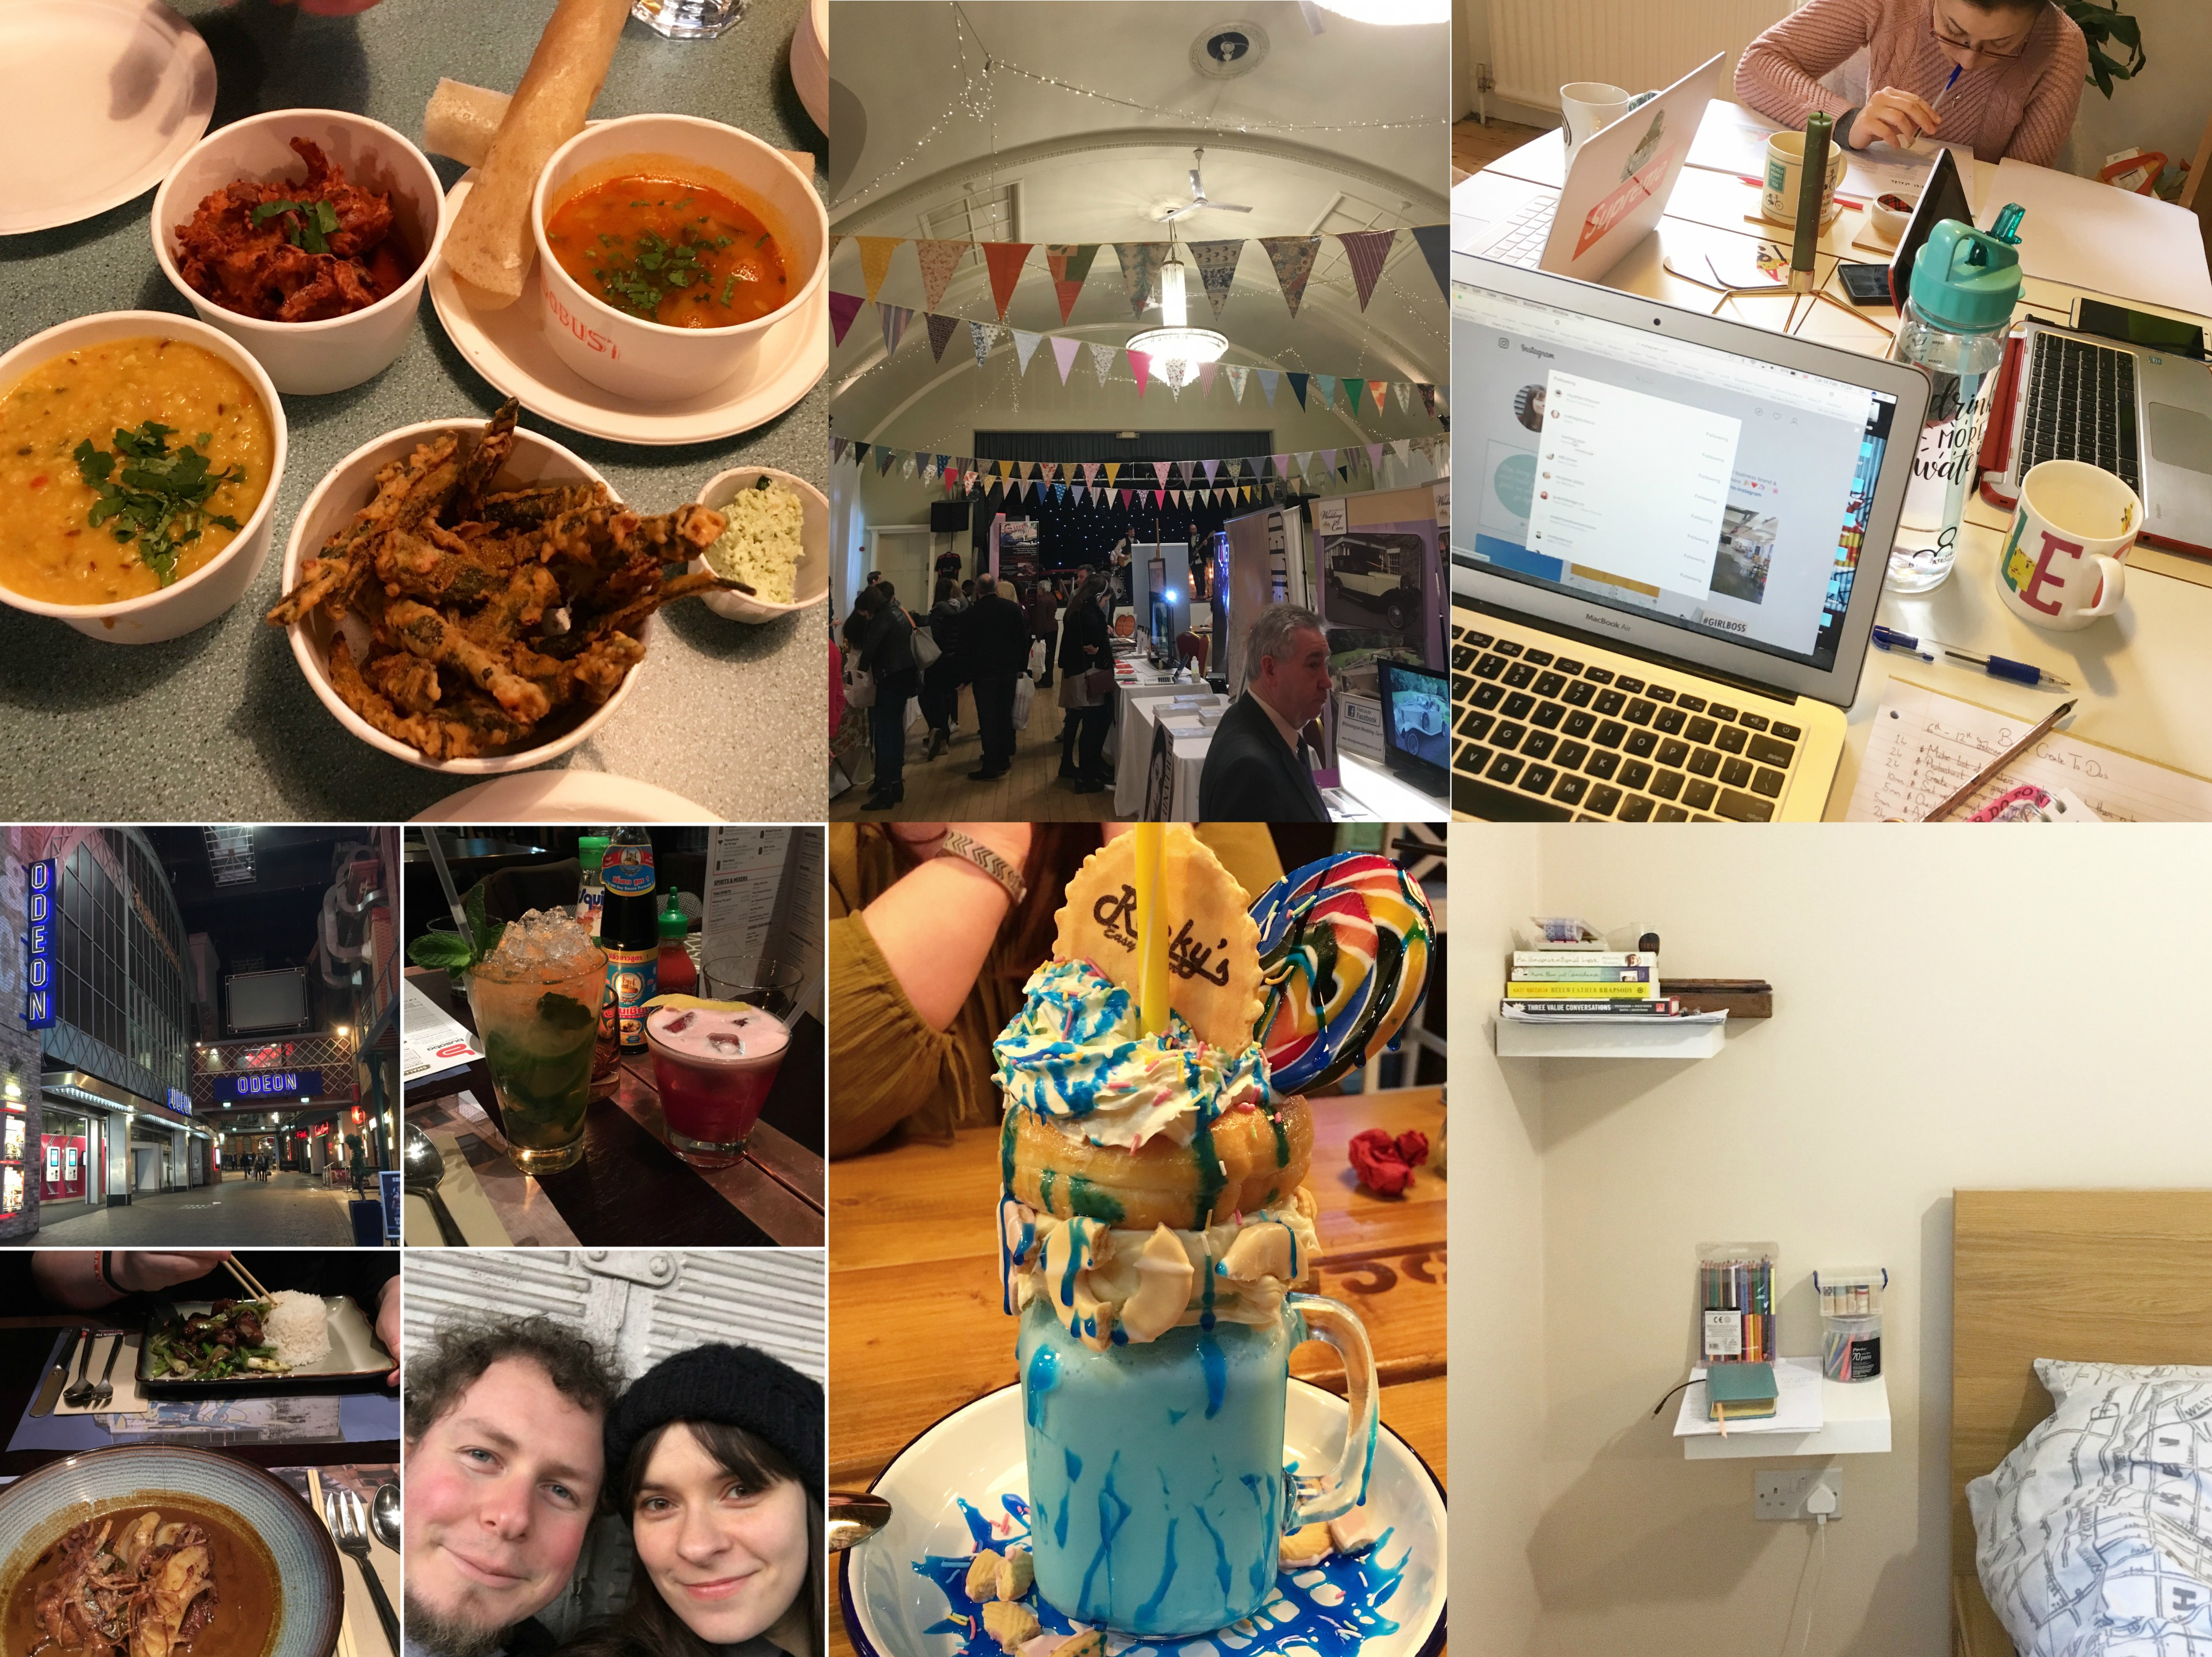 2017 in review - FEB